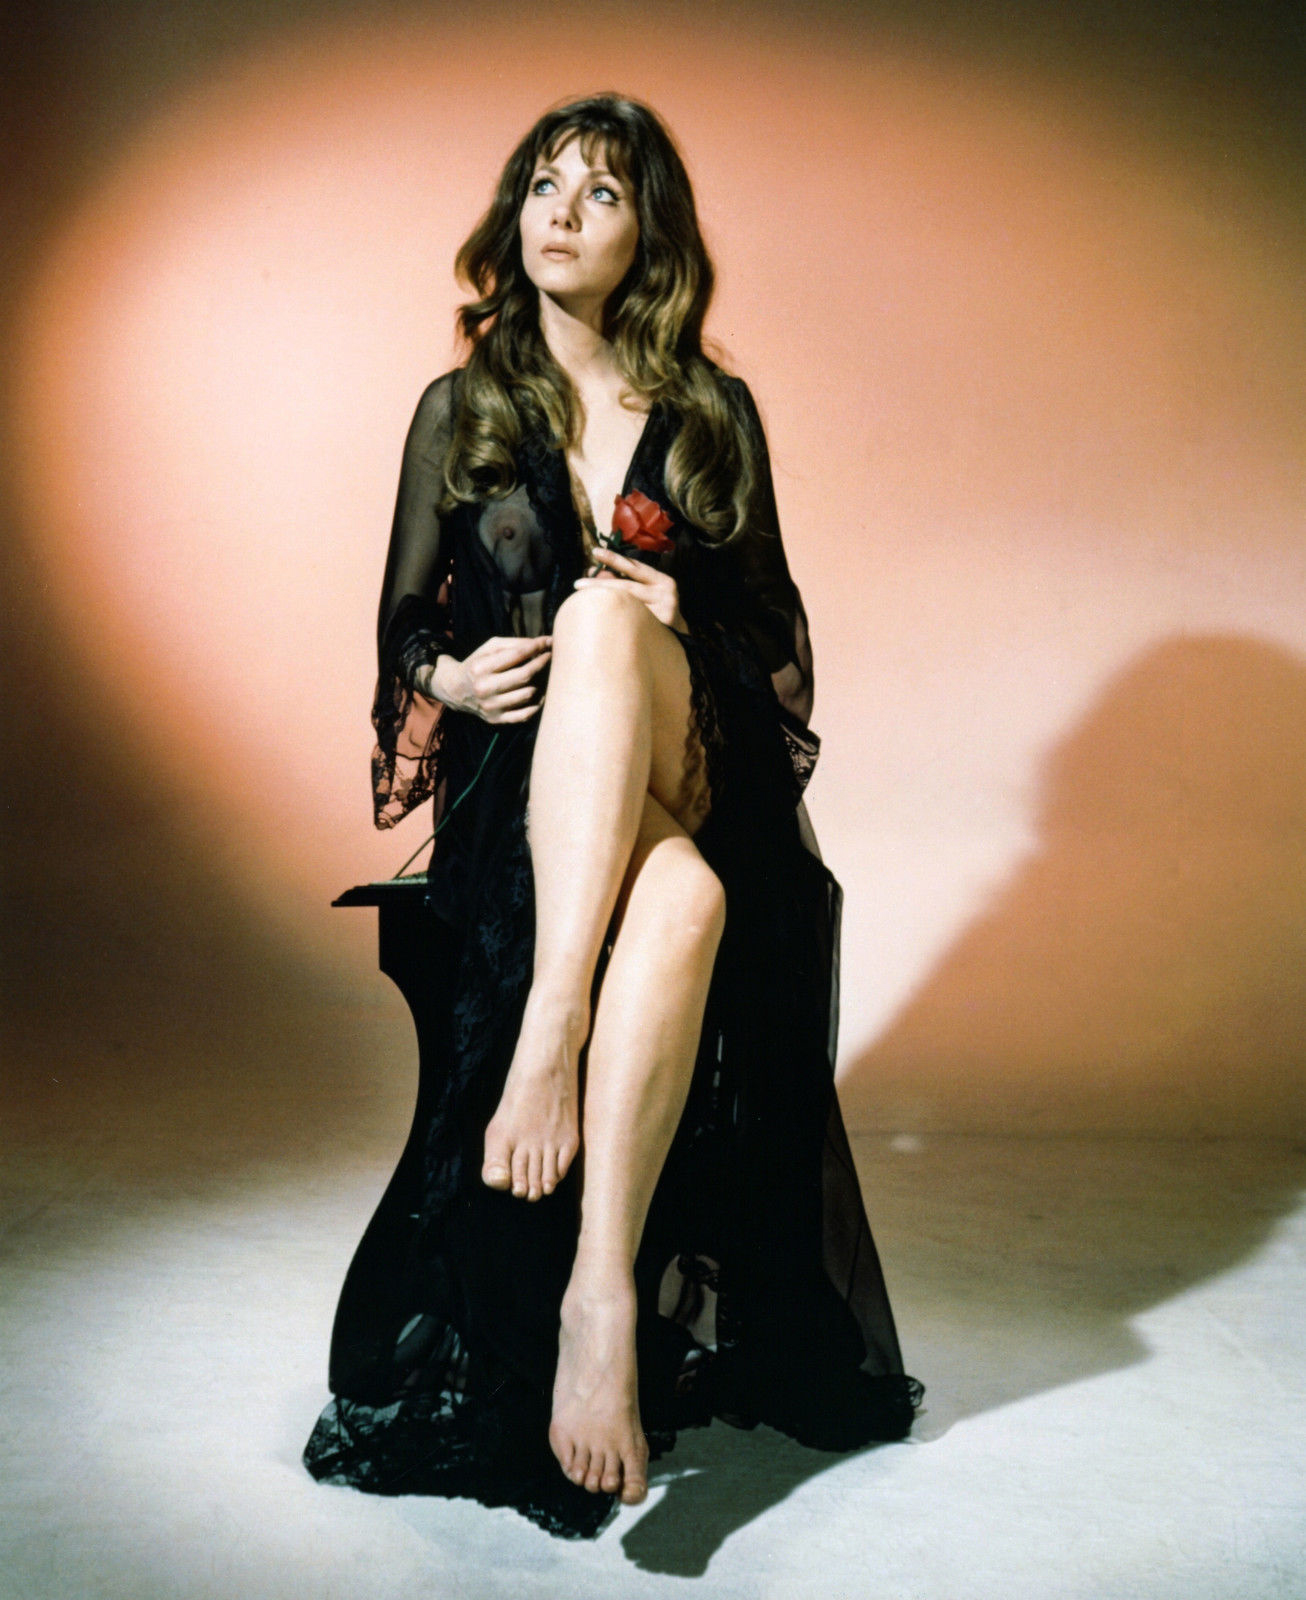 Hammer Films: The Vampire Lovers (1970) and Countess Dracula (1971), Ingrid Pitt